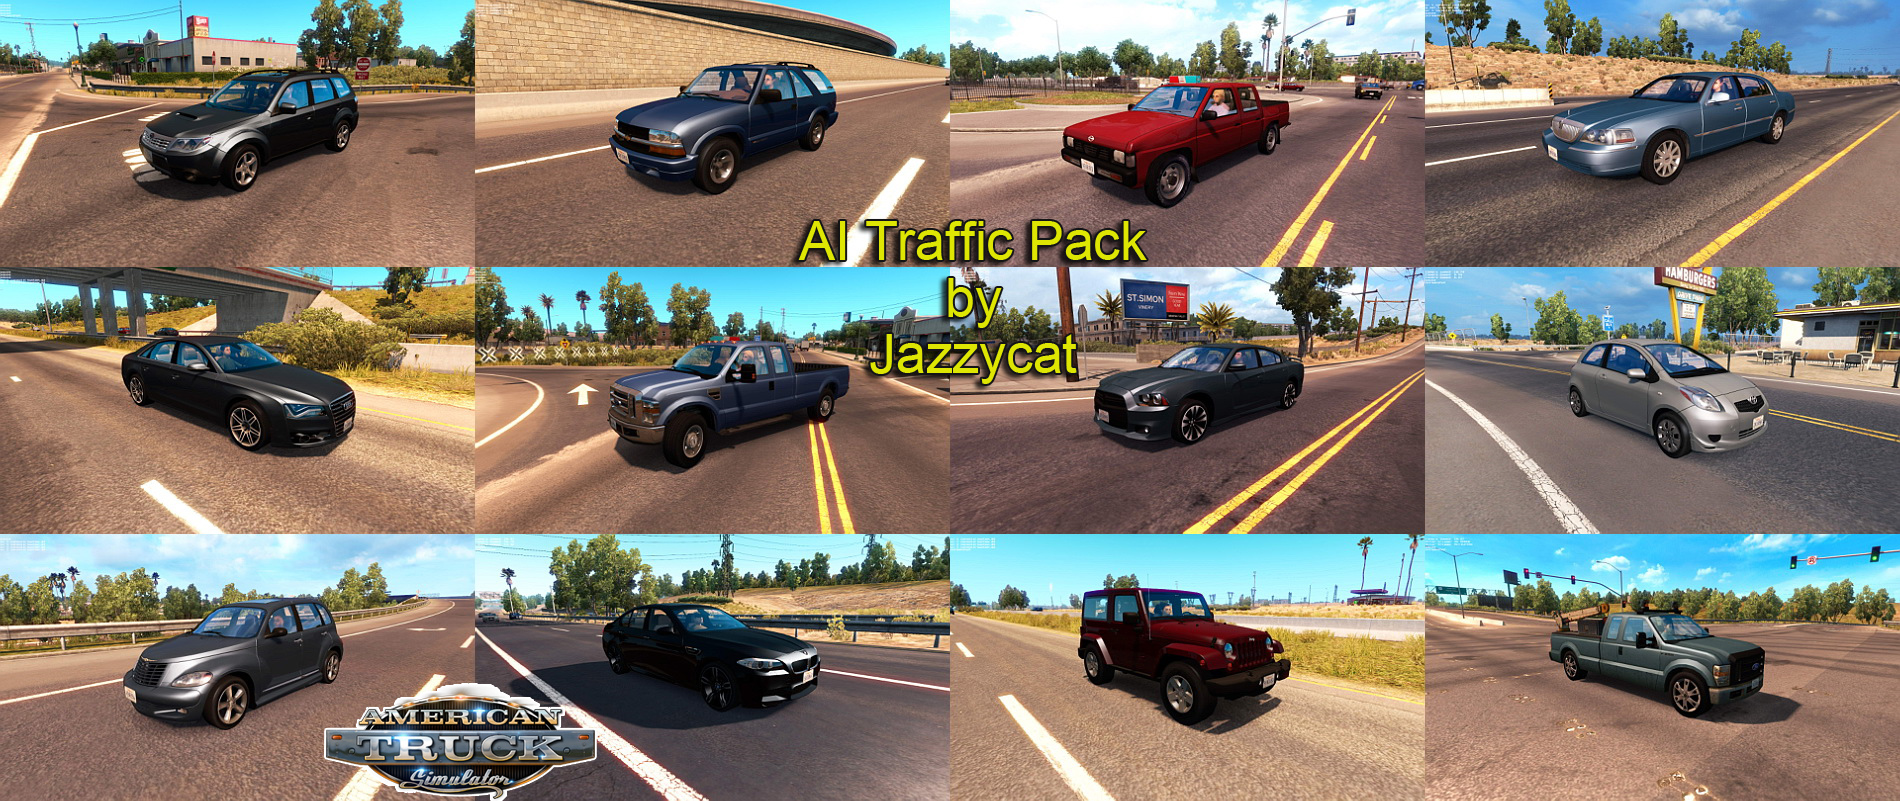 02_ai_traffic_pack_by_Jazzycat_v1.2.jpg